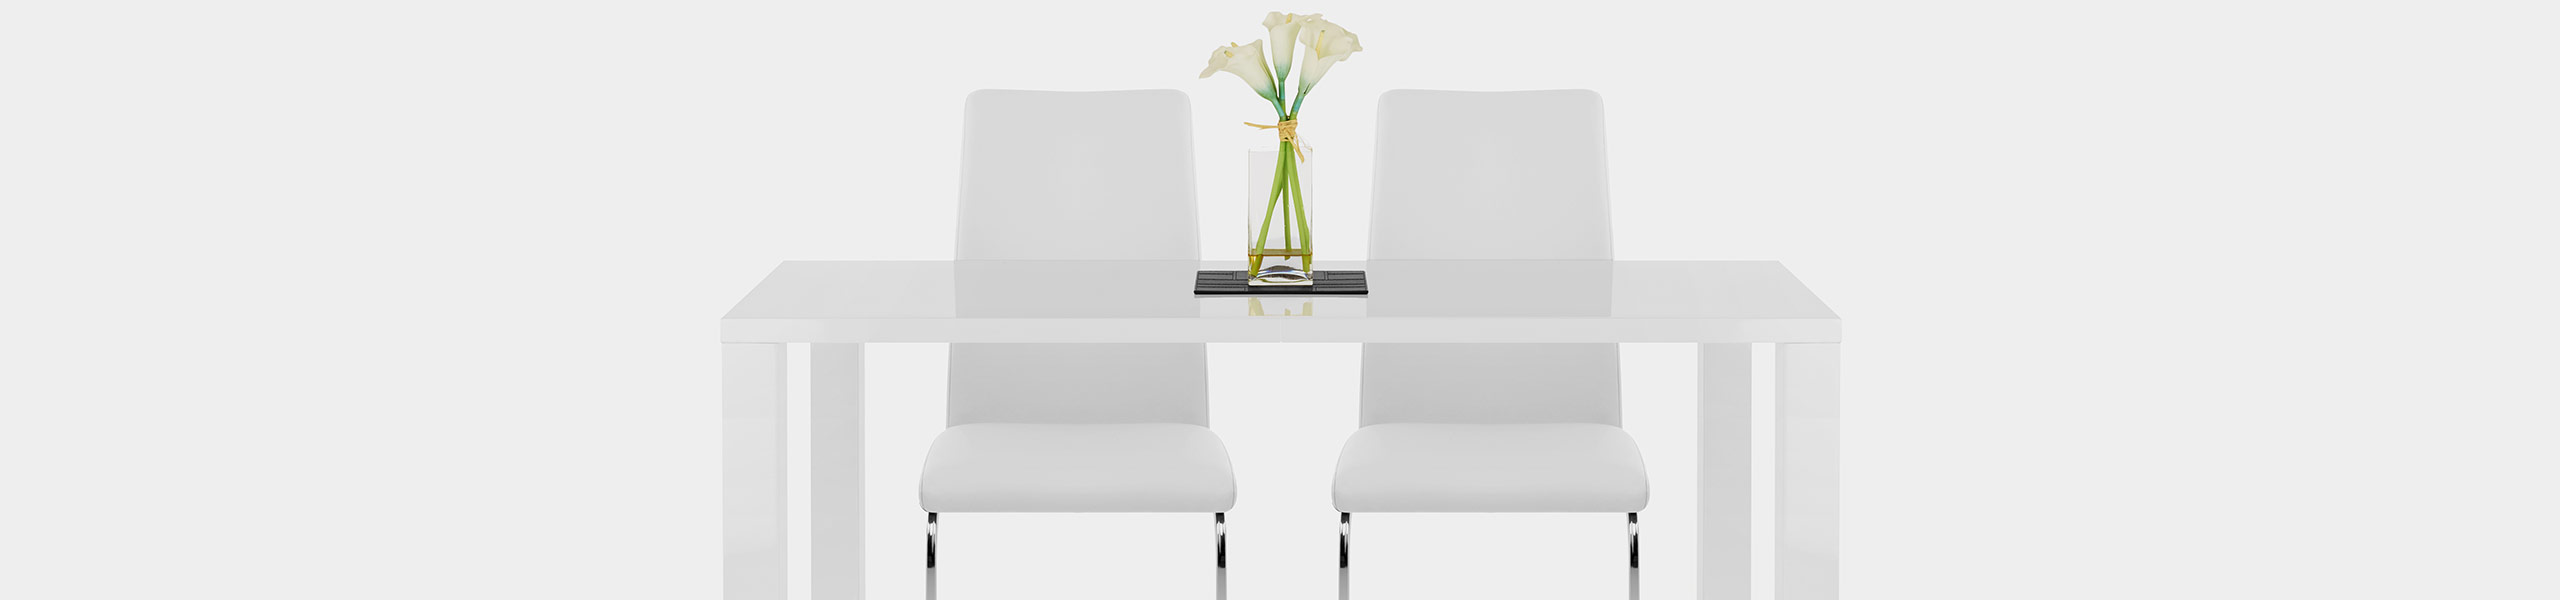 Jordan Dining Chair White Video Banner